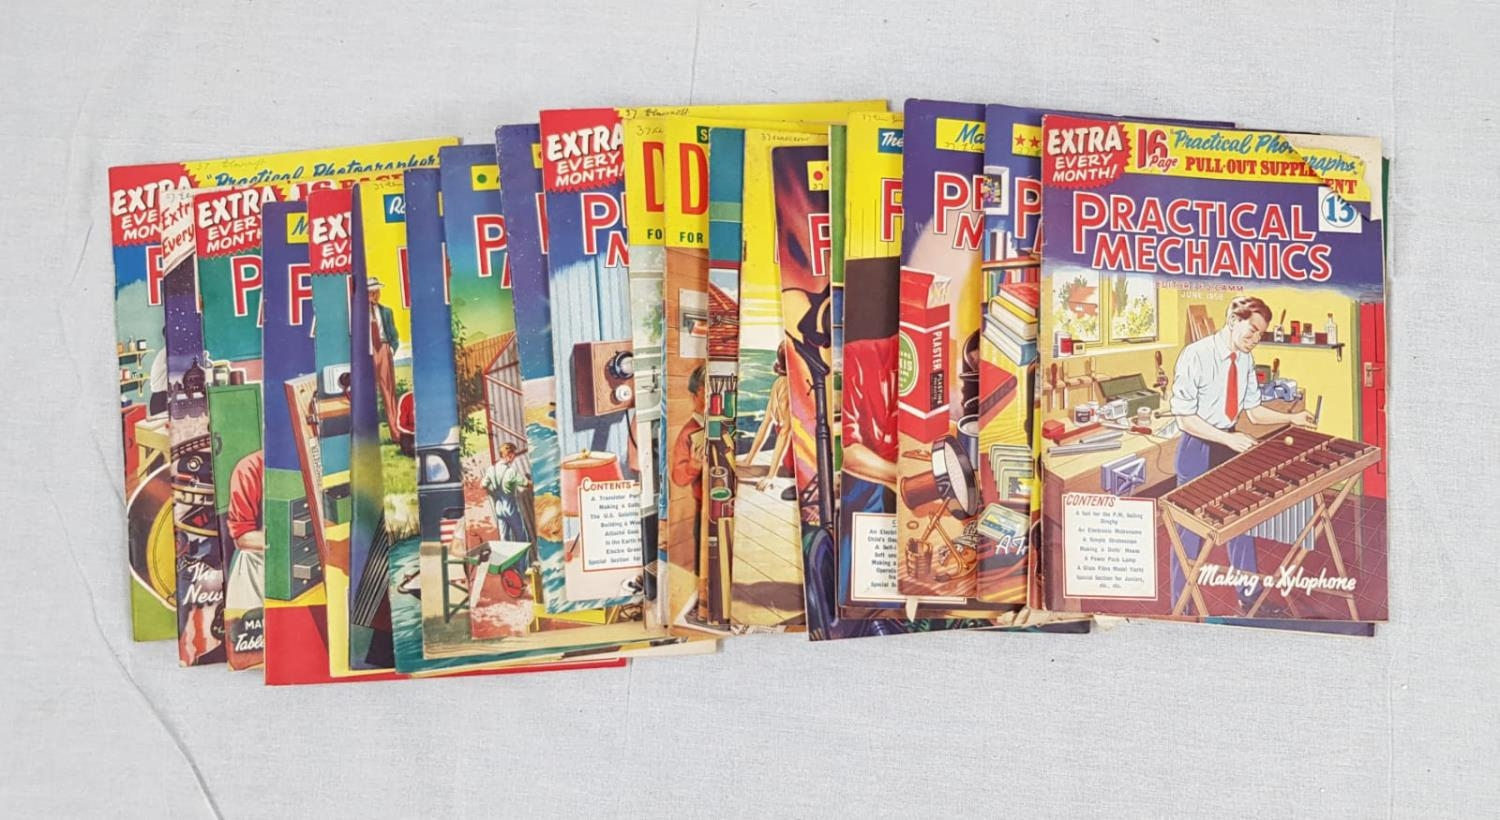 Vintage copies of Practical Mechanics magazine from 1957 - 1958. Including the classics: A room to